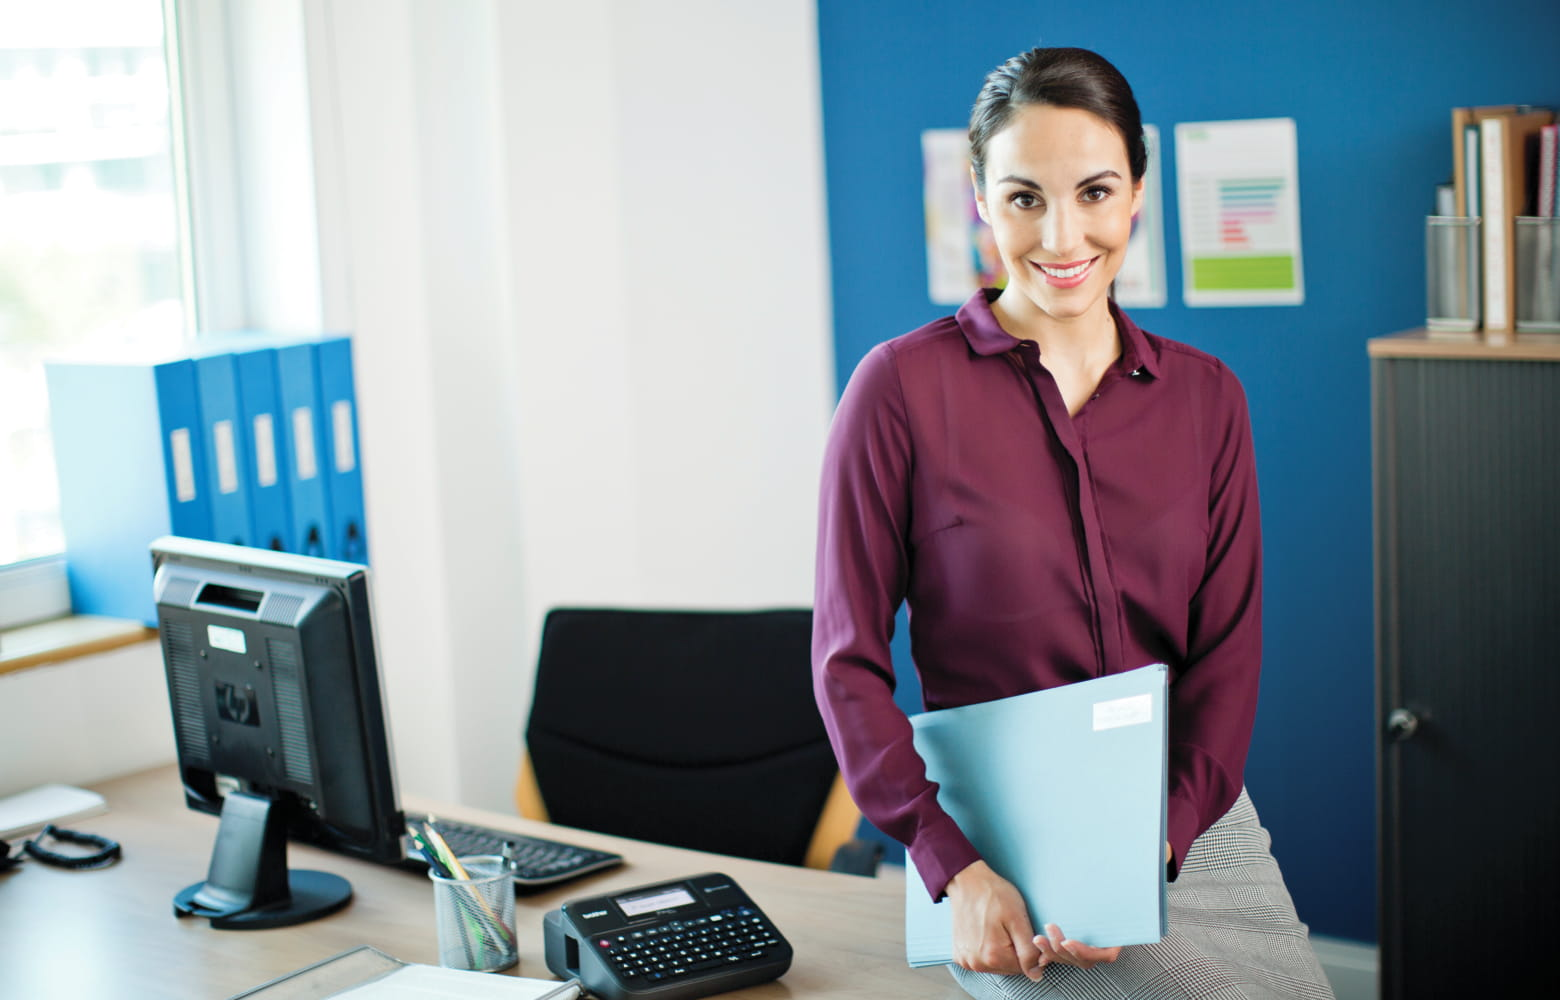 Female office worker sat on office desk with file folder in hand, next to a PC and Brother P-touch label printer